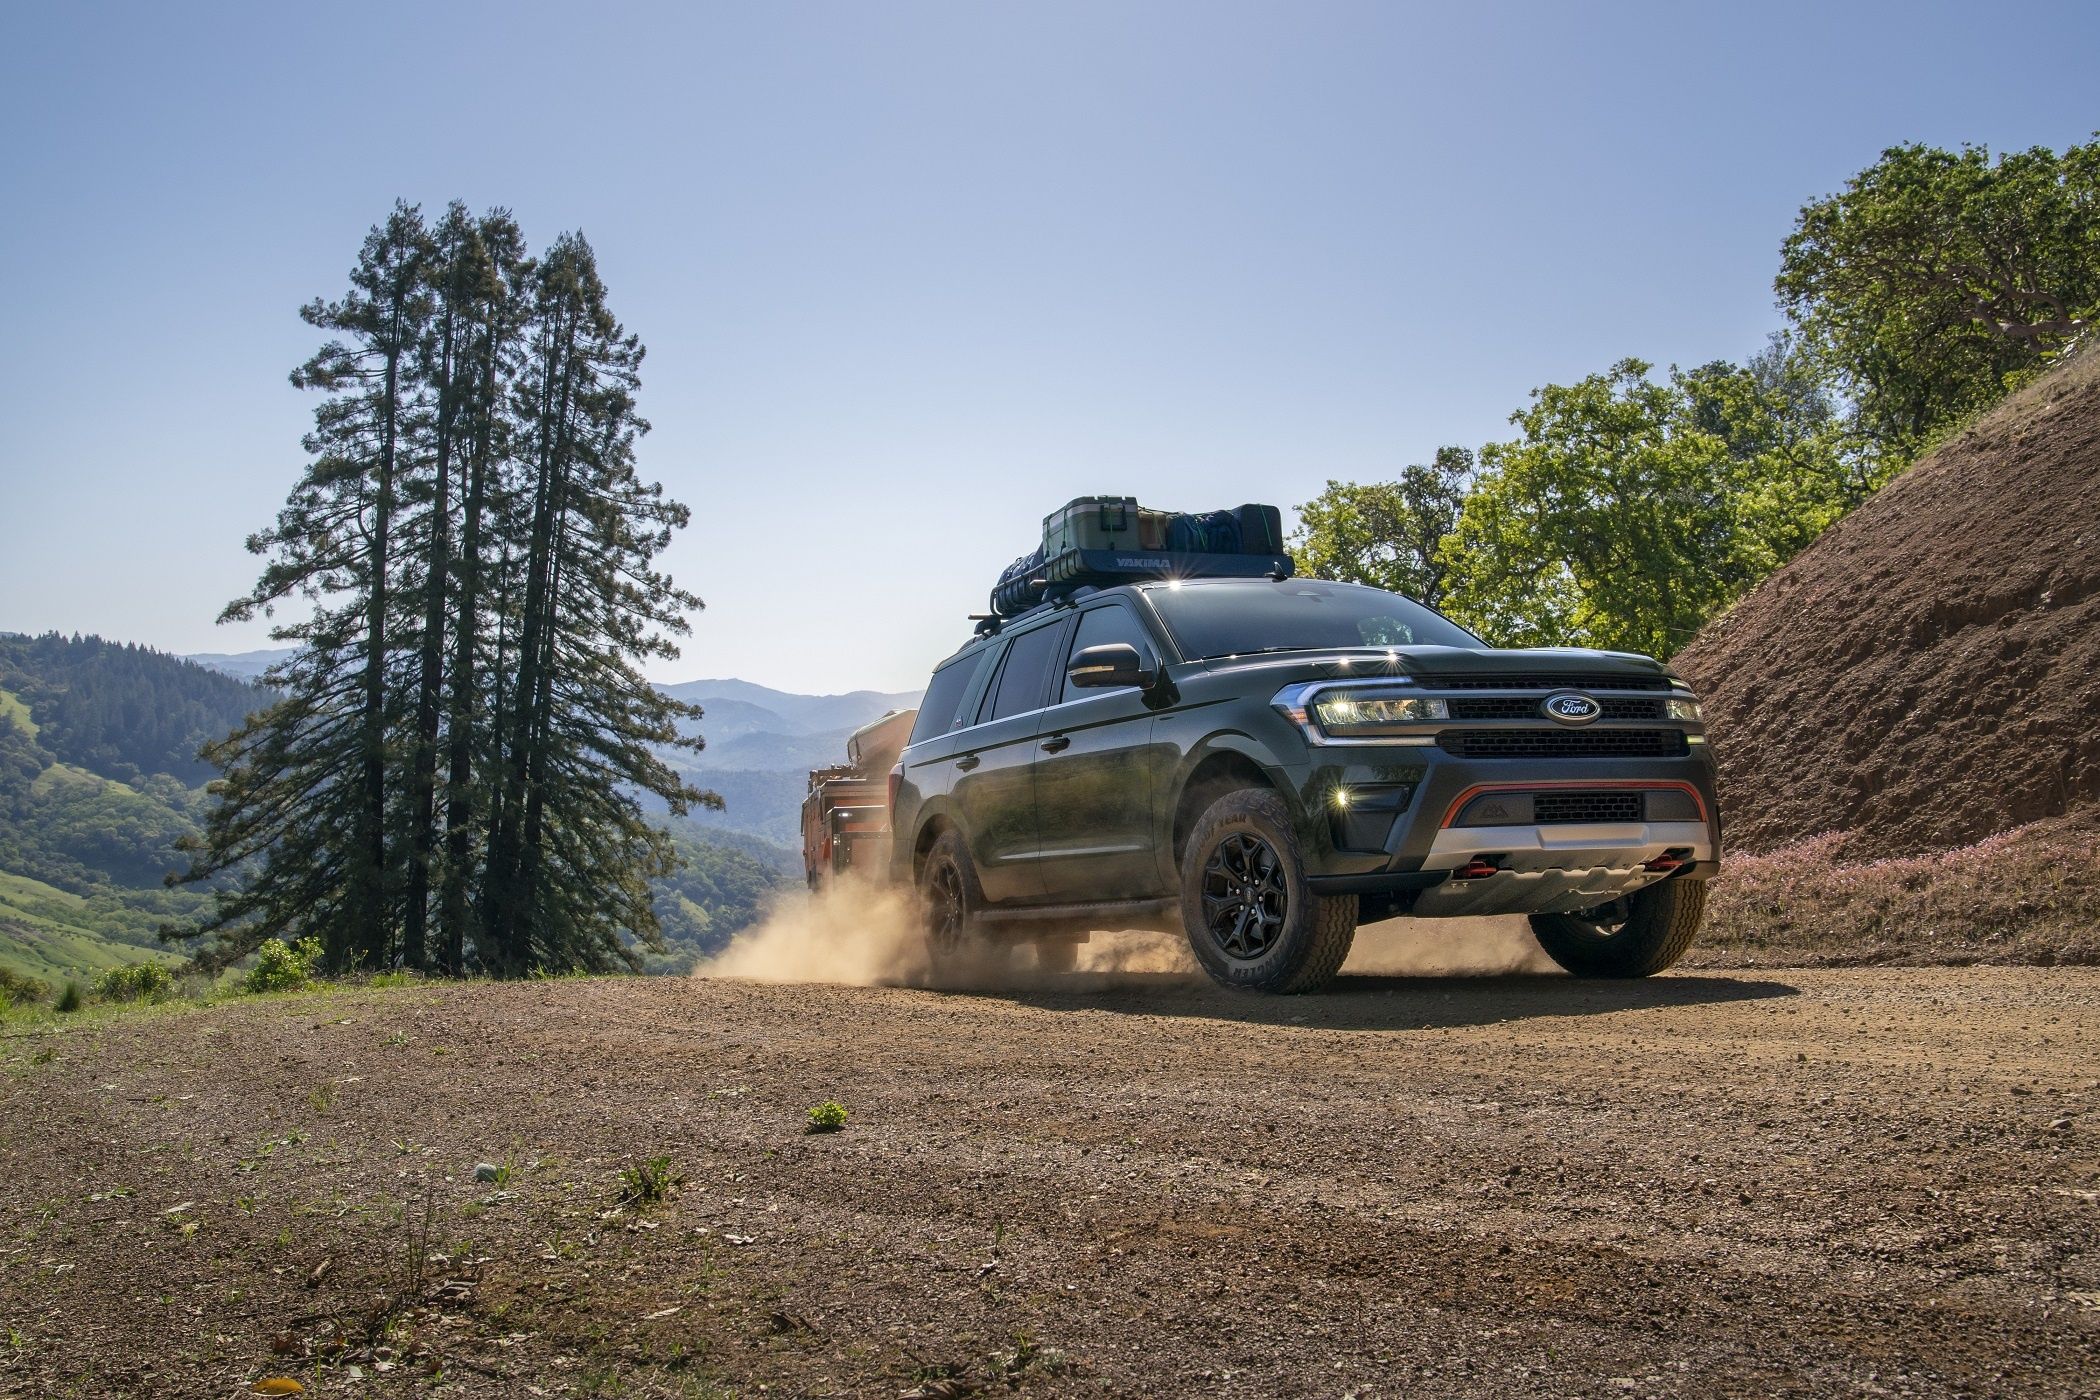 New Ford Expedition Raises Bar Among Full-Size SUVs with Most Off-Road Capable, Most Powerful, Smartest Expedition Ever